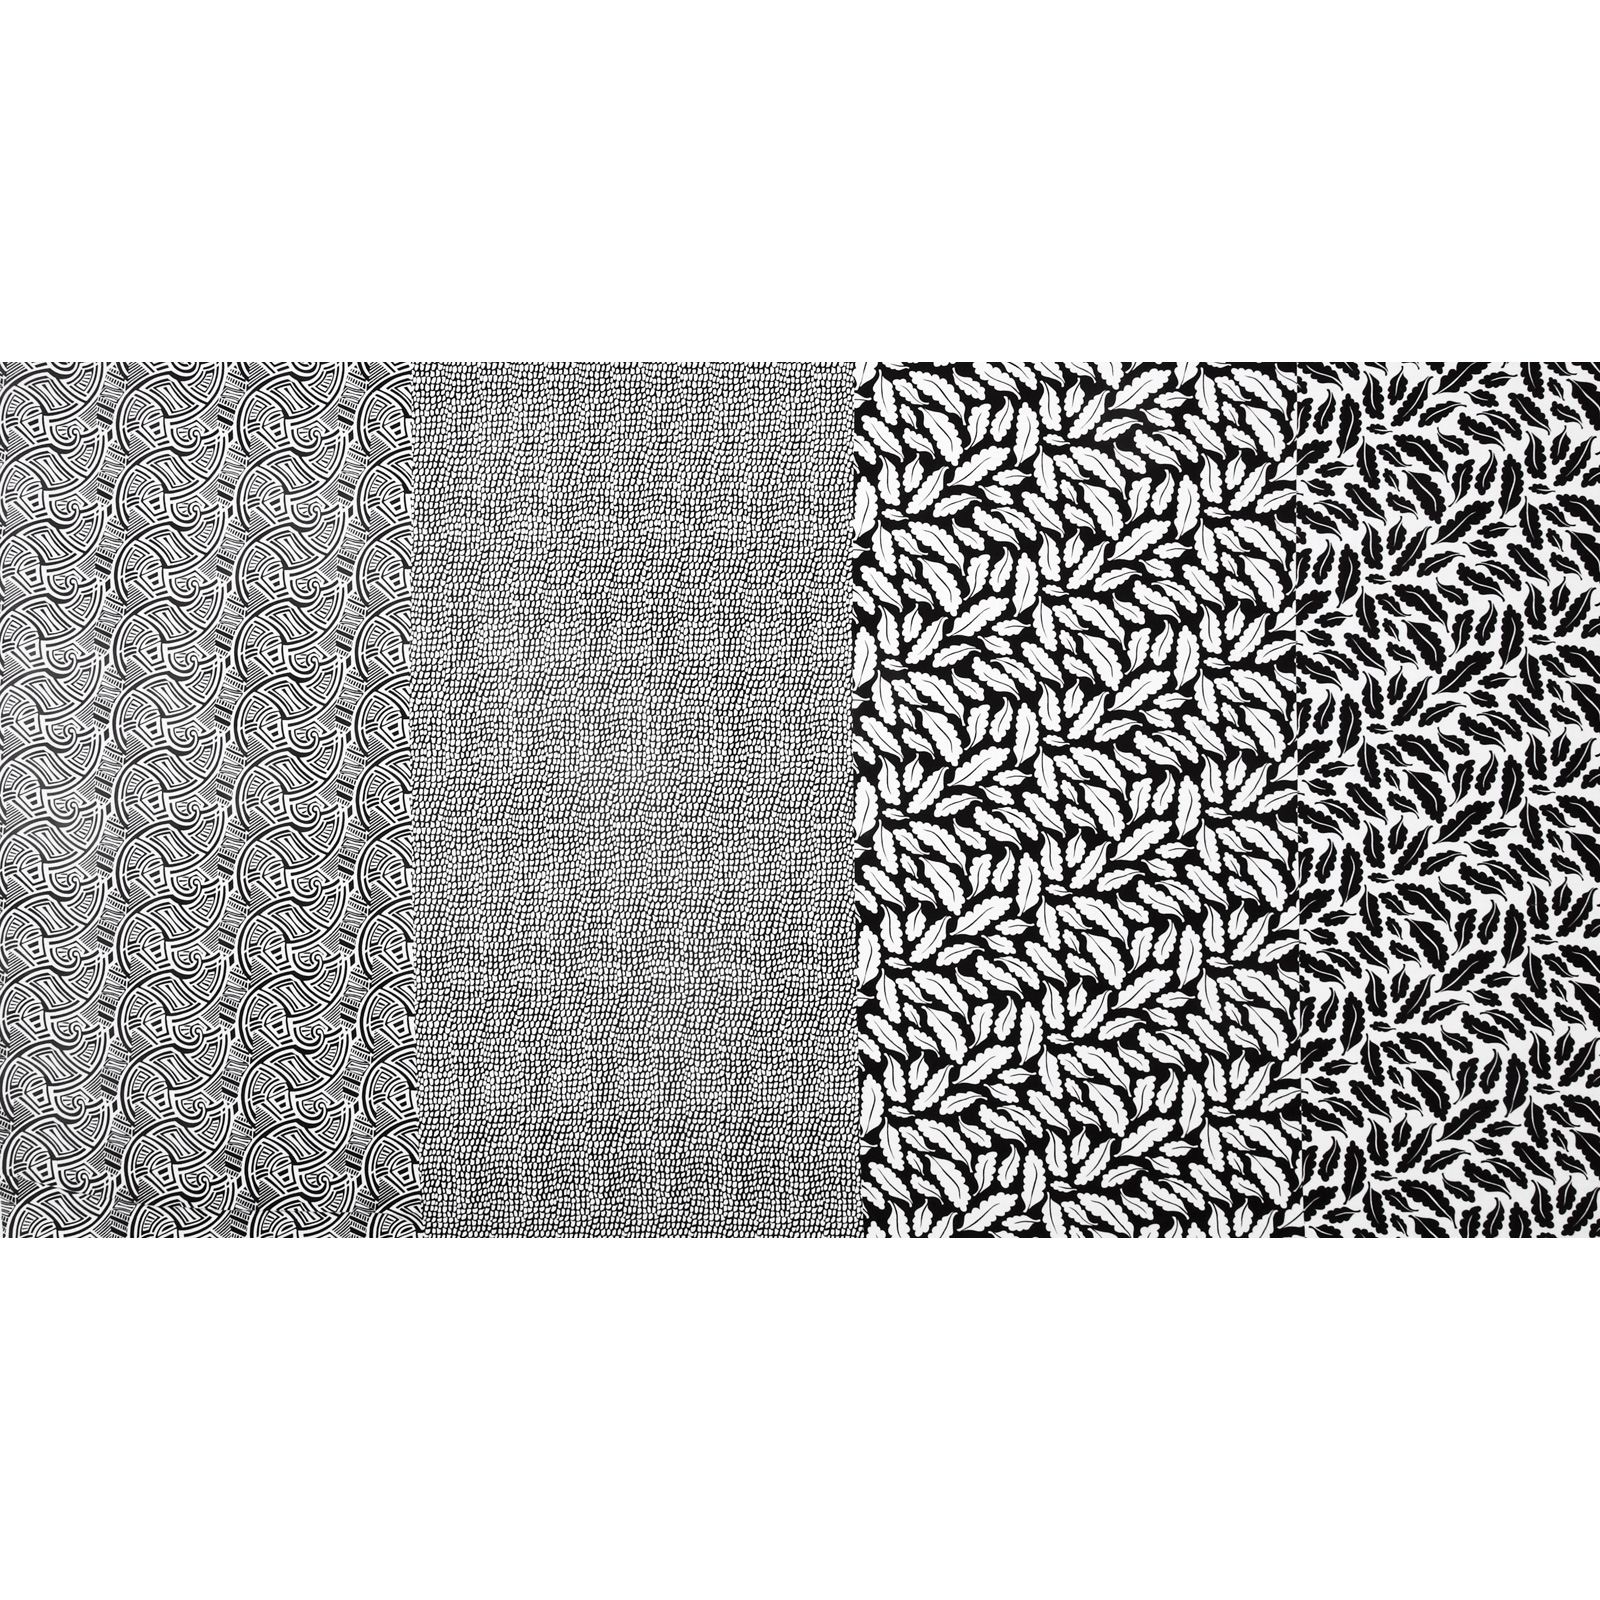 Geniuses Go Wild Patch Stripe Black/White Fabric